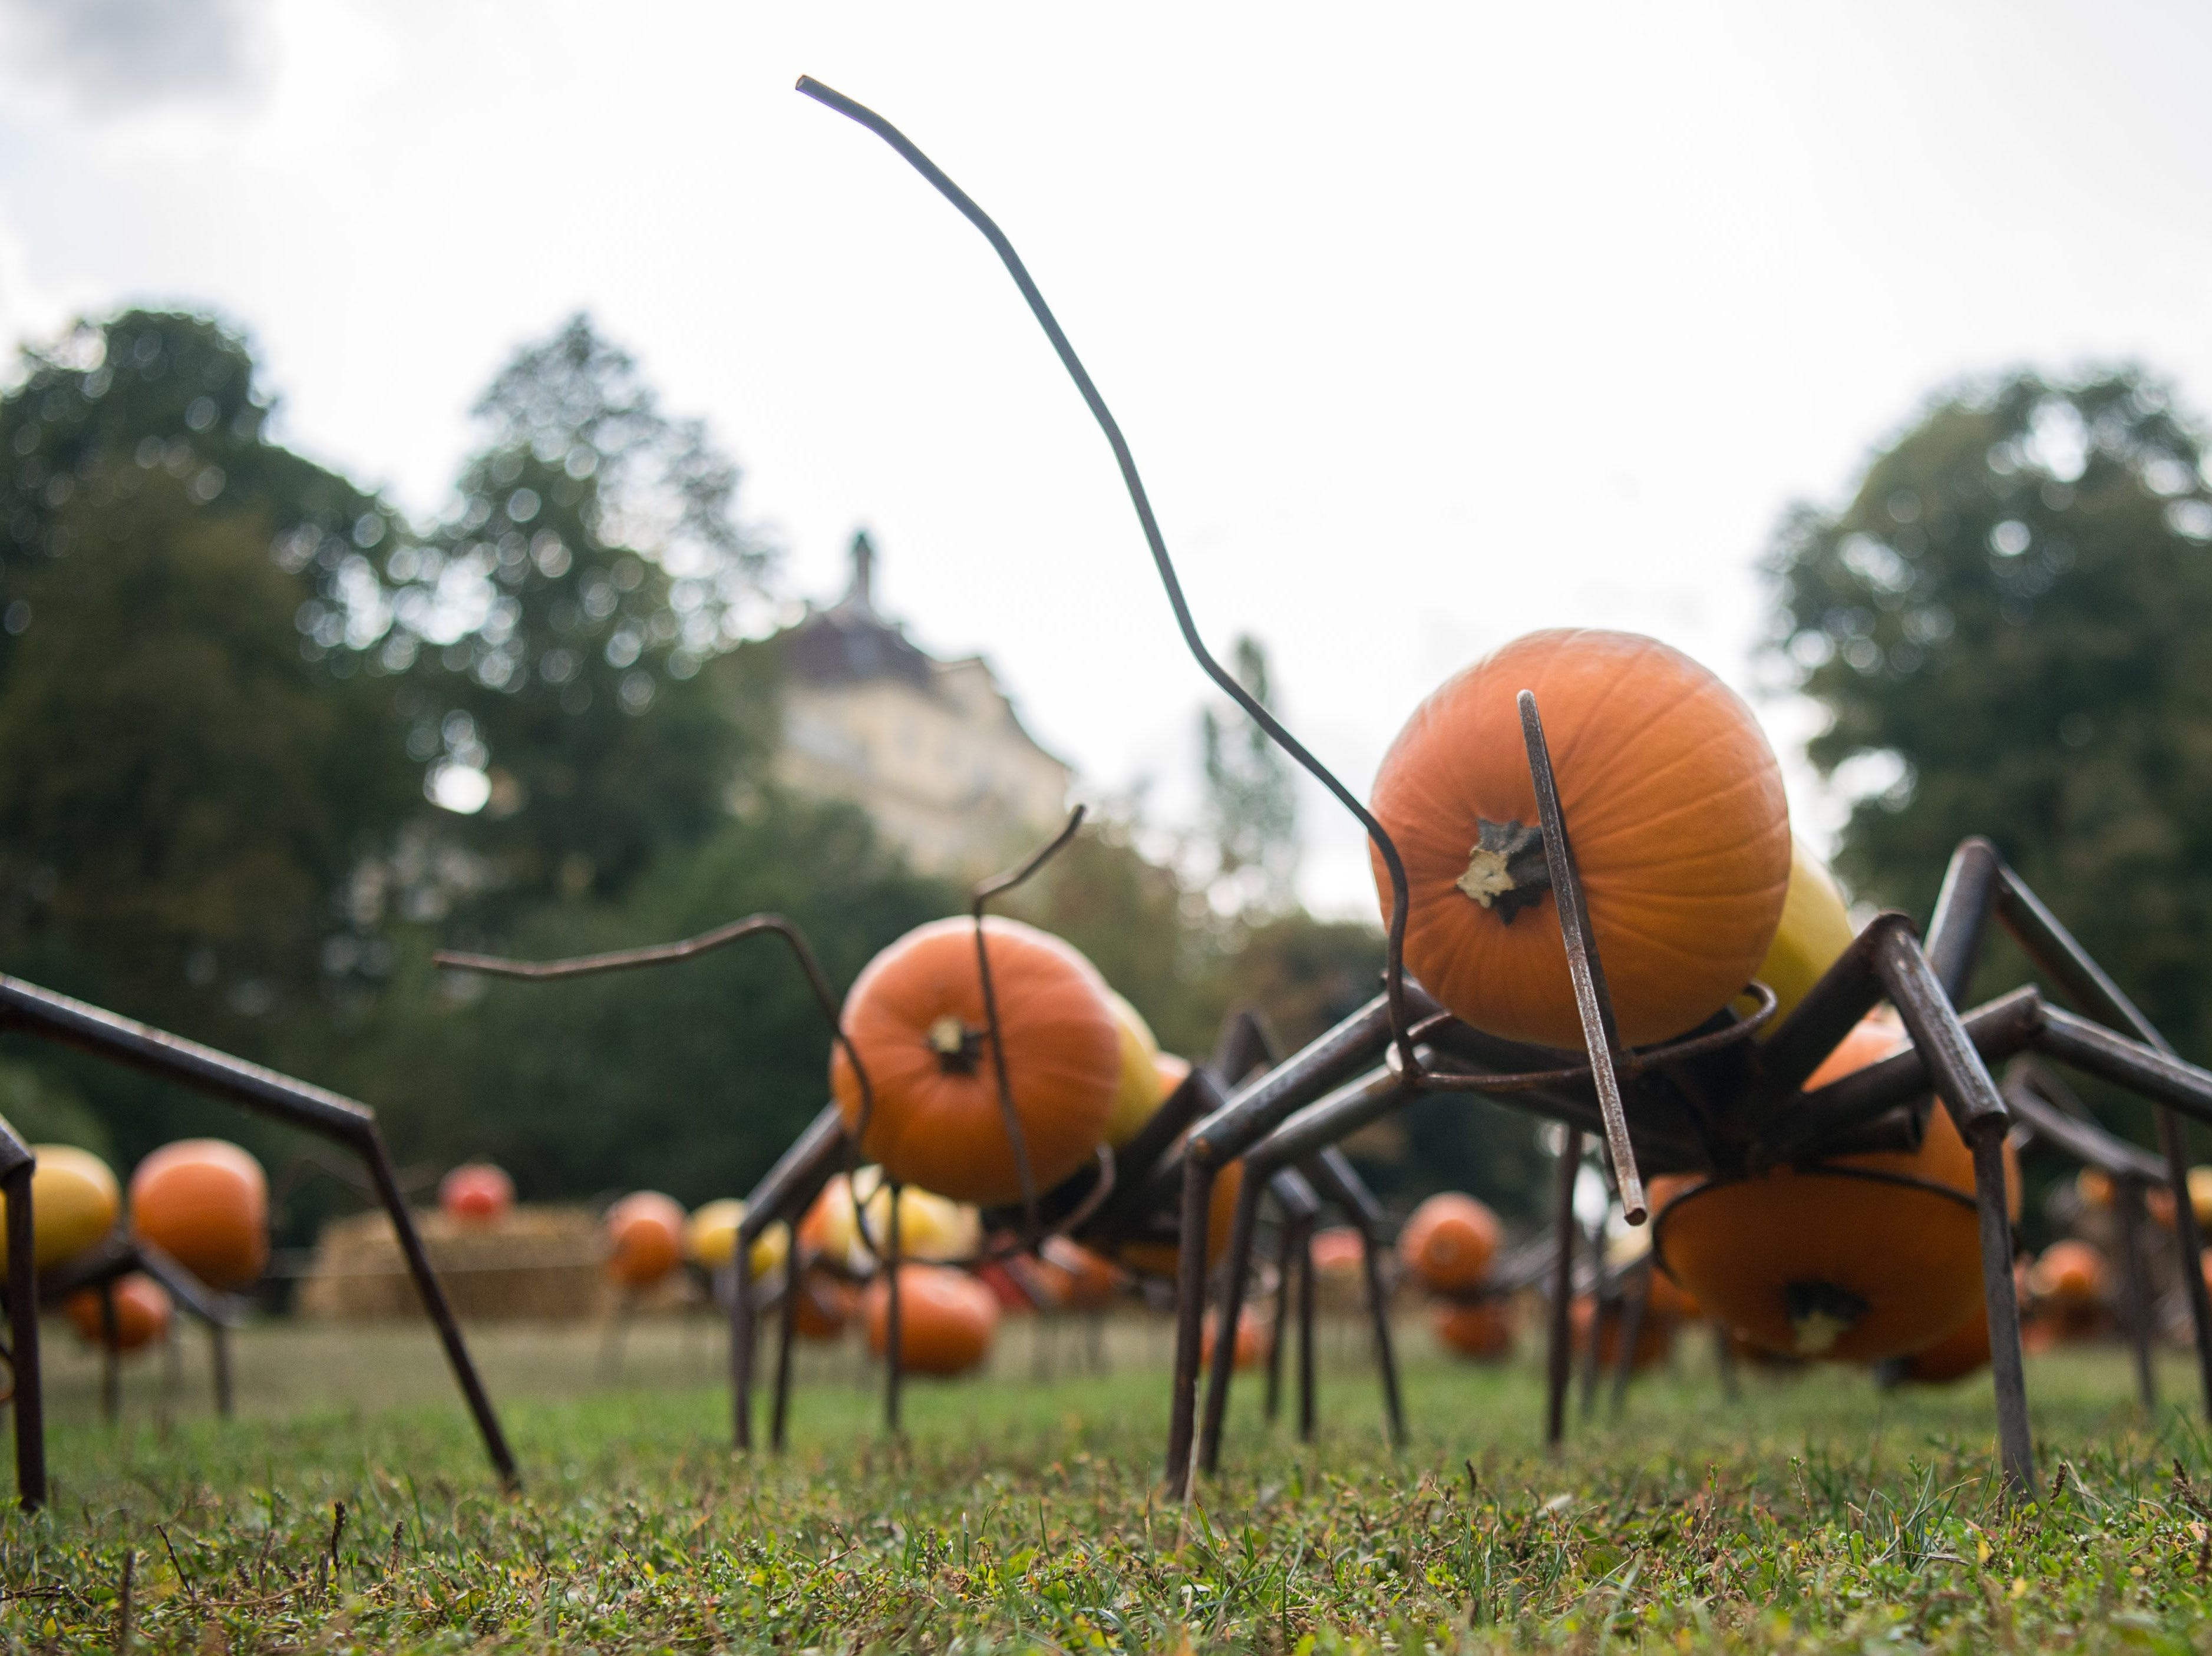 The Ludwigsburg exhibit also featured pumpkin ants.